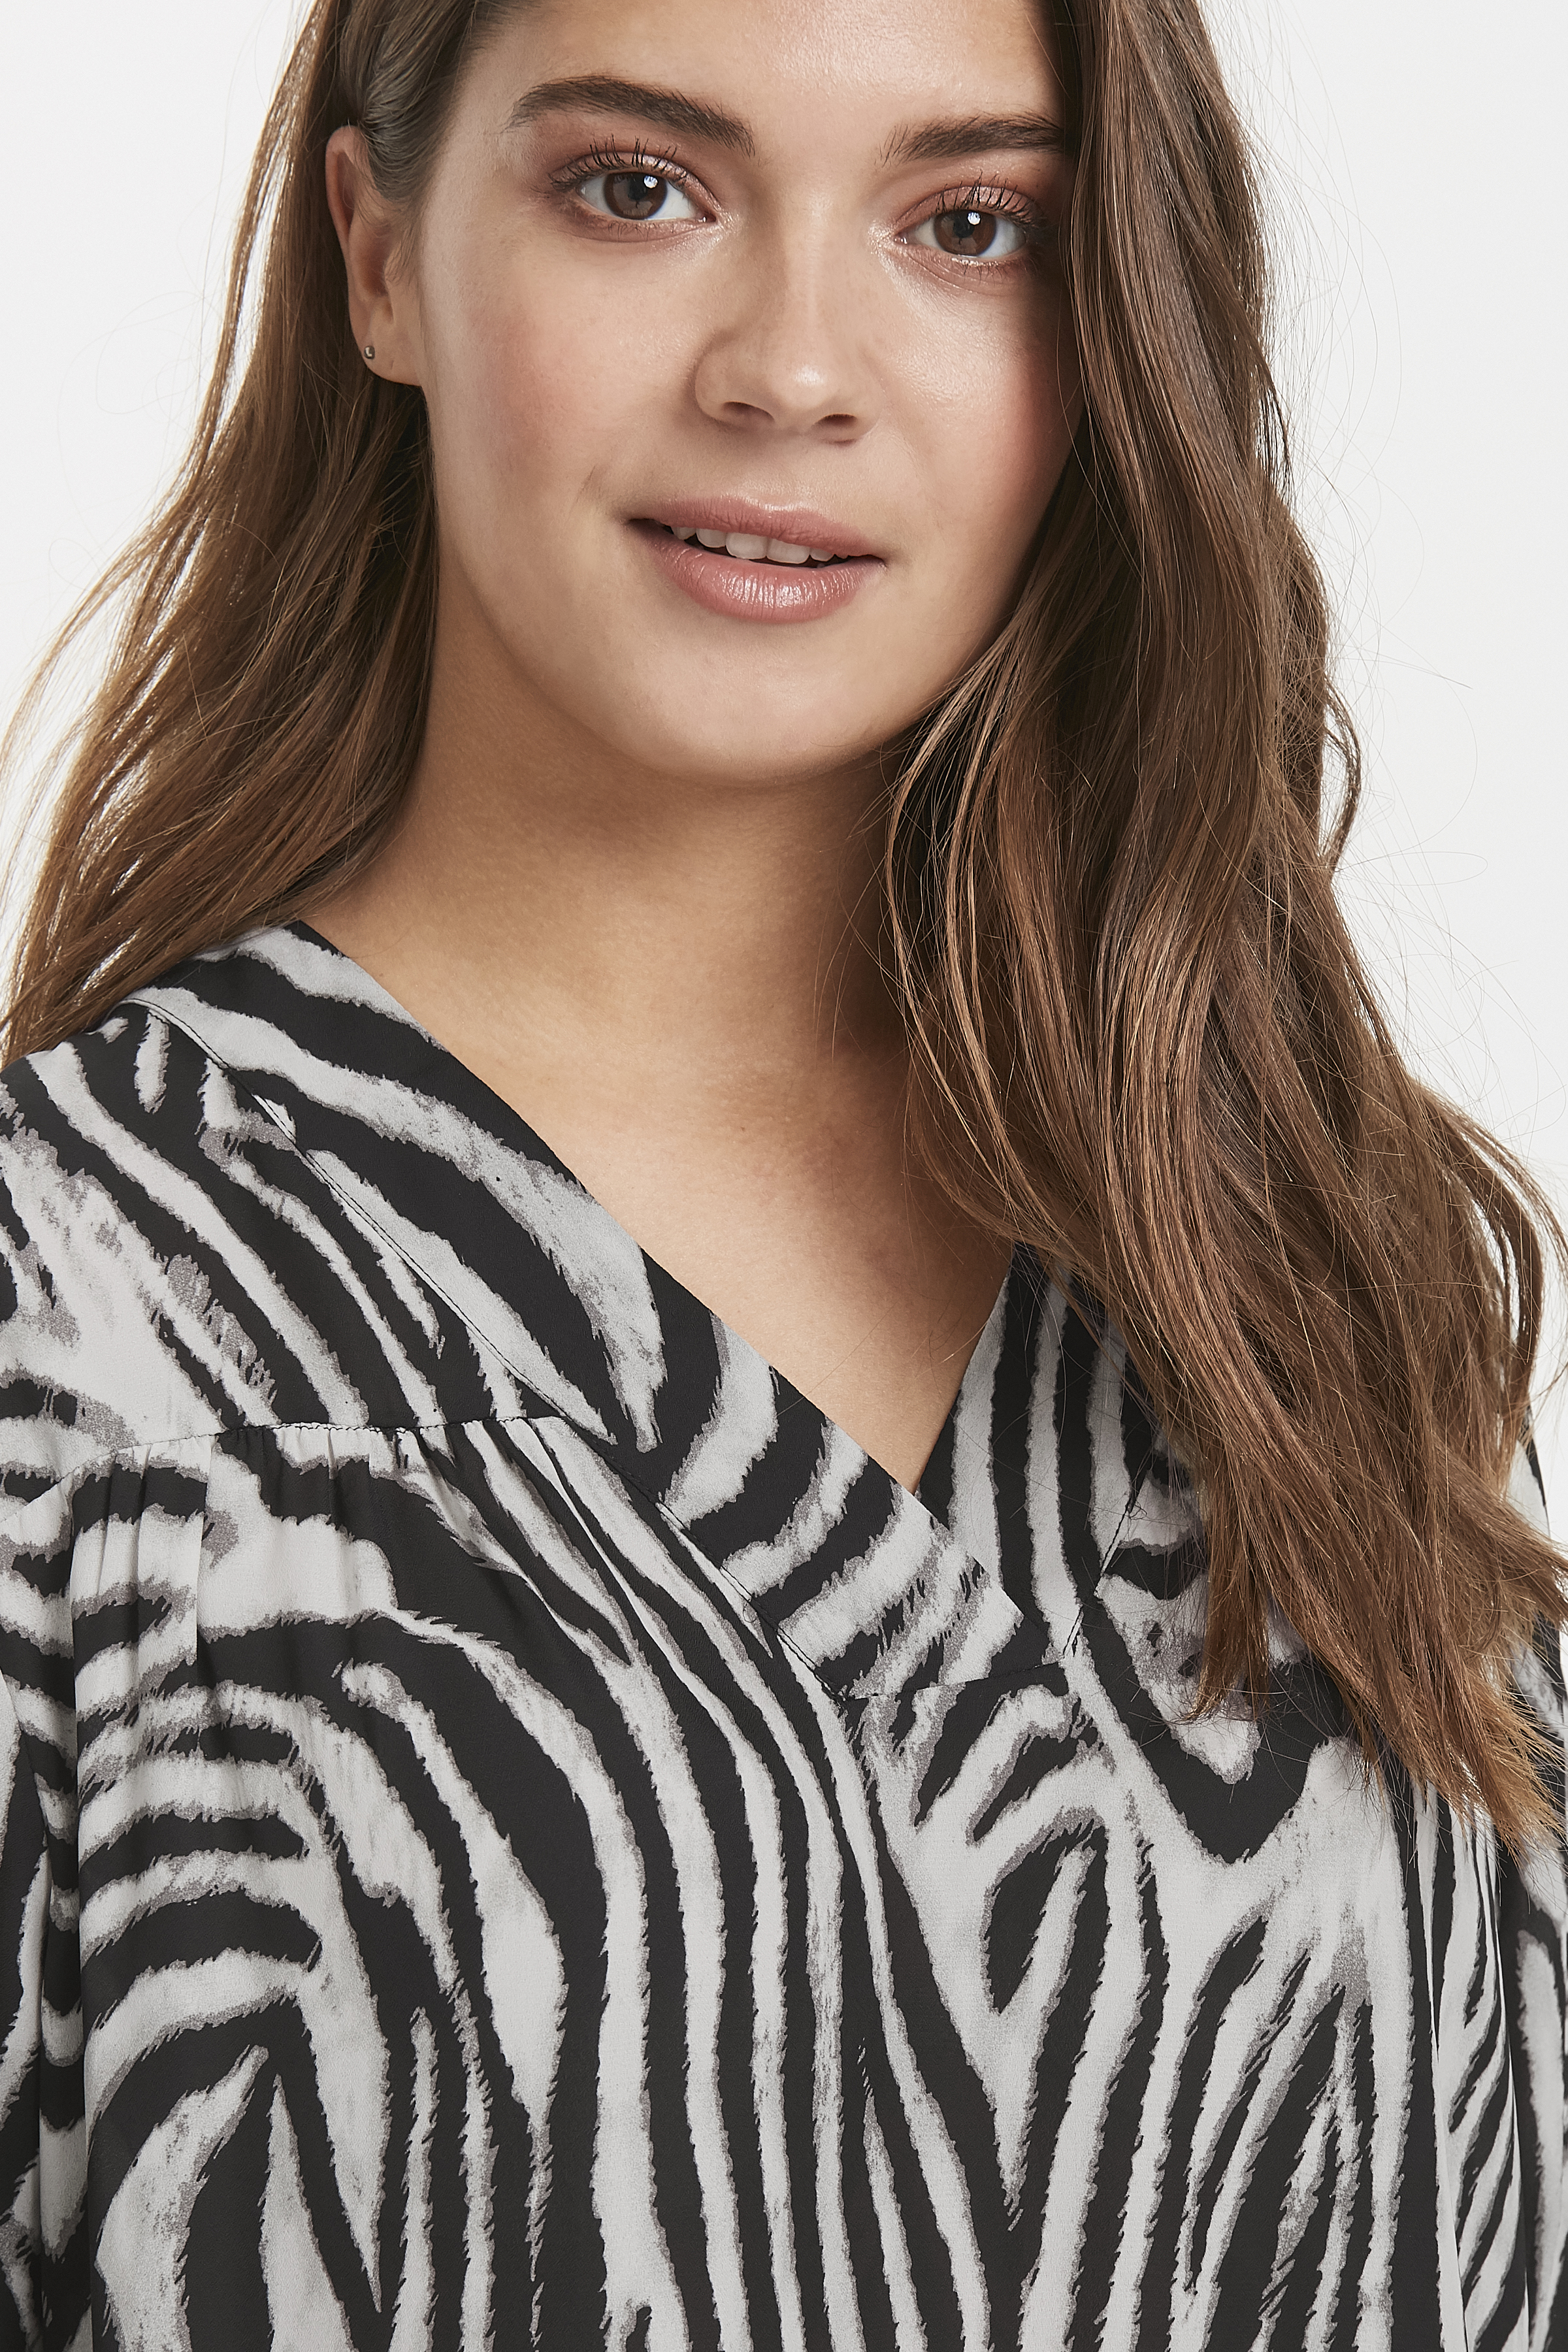 Zebra combi 1 Dress from b.young – Buy Zebra combi 1 Dress from size 34-42 here